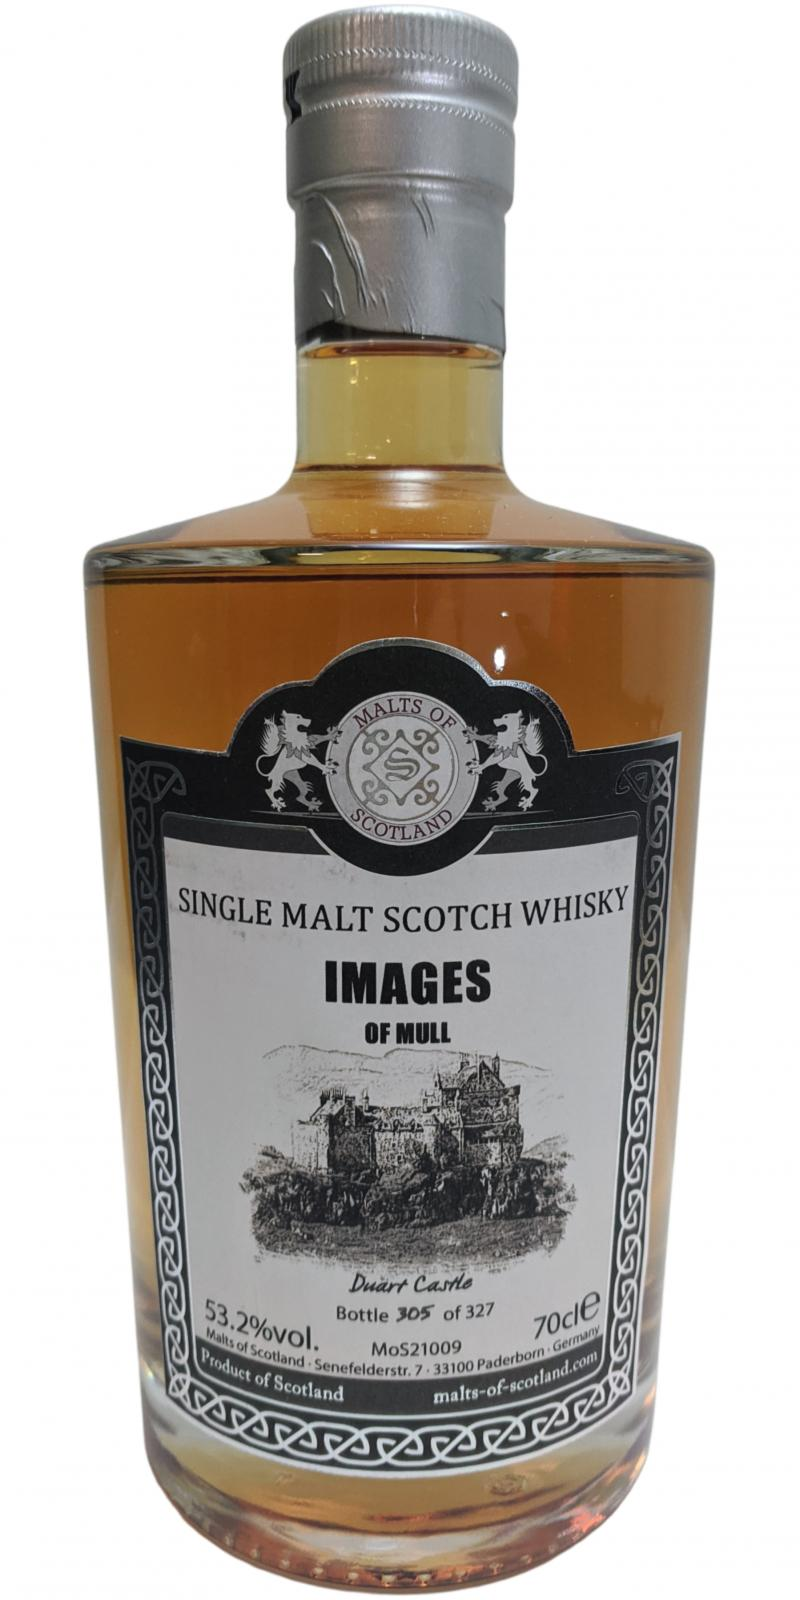 Images of Mull Duart Castle MoS